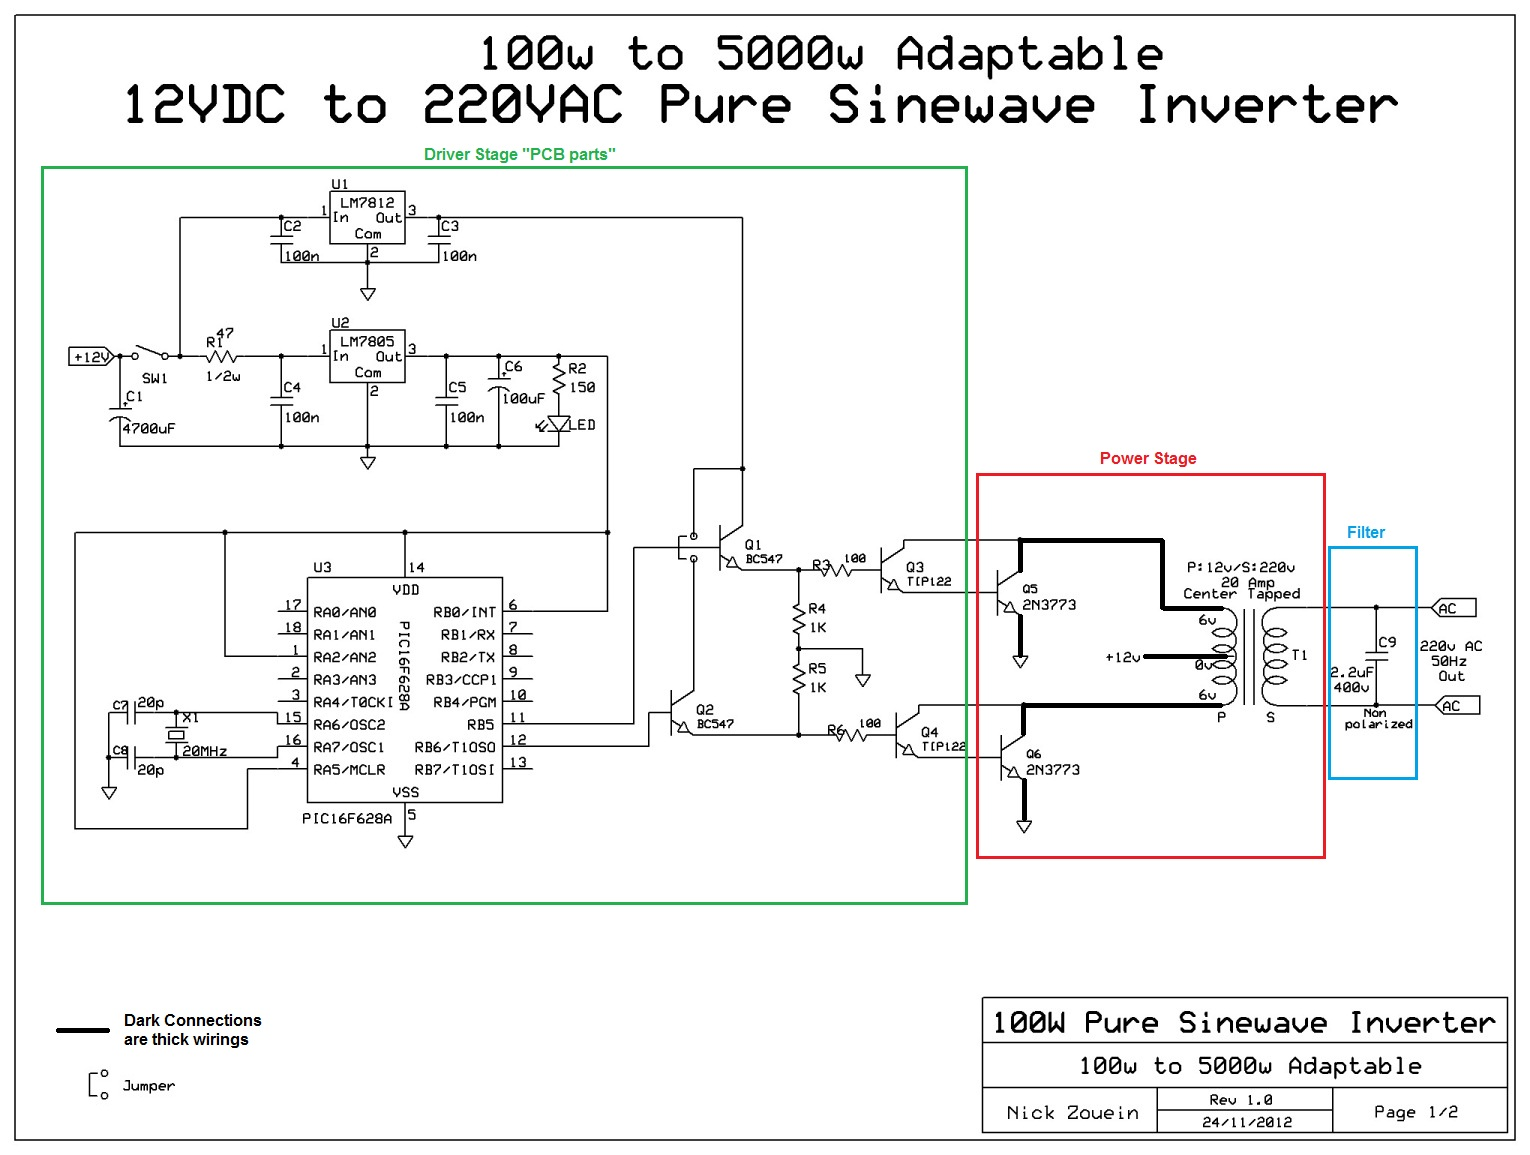 Adaptable 12vDC/220vAC Pure Sinewave Inverter